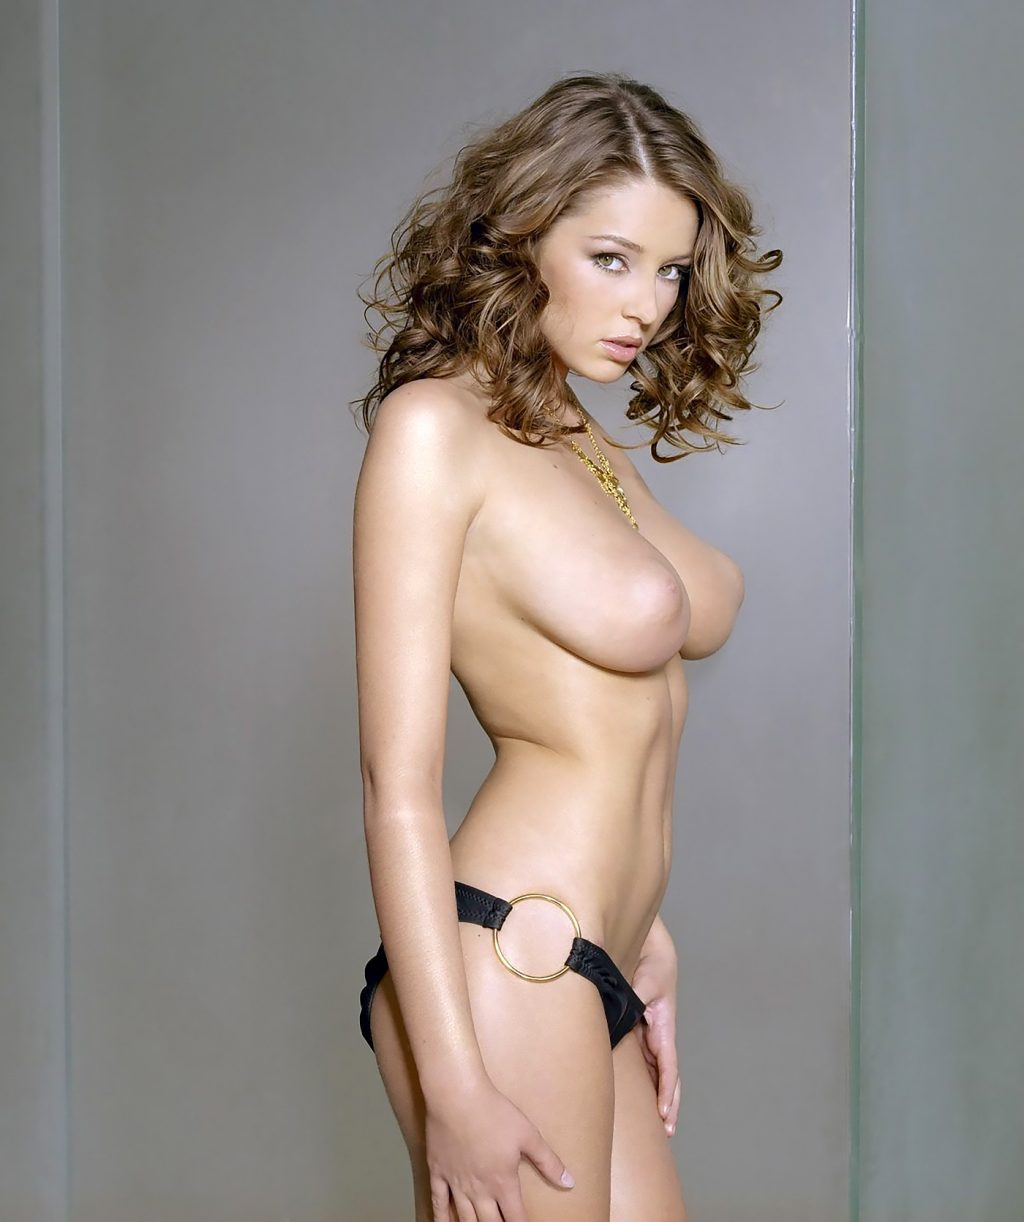 Keeley Hazell Nude Photos Collection - Scandalpost-9637